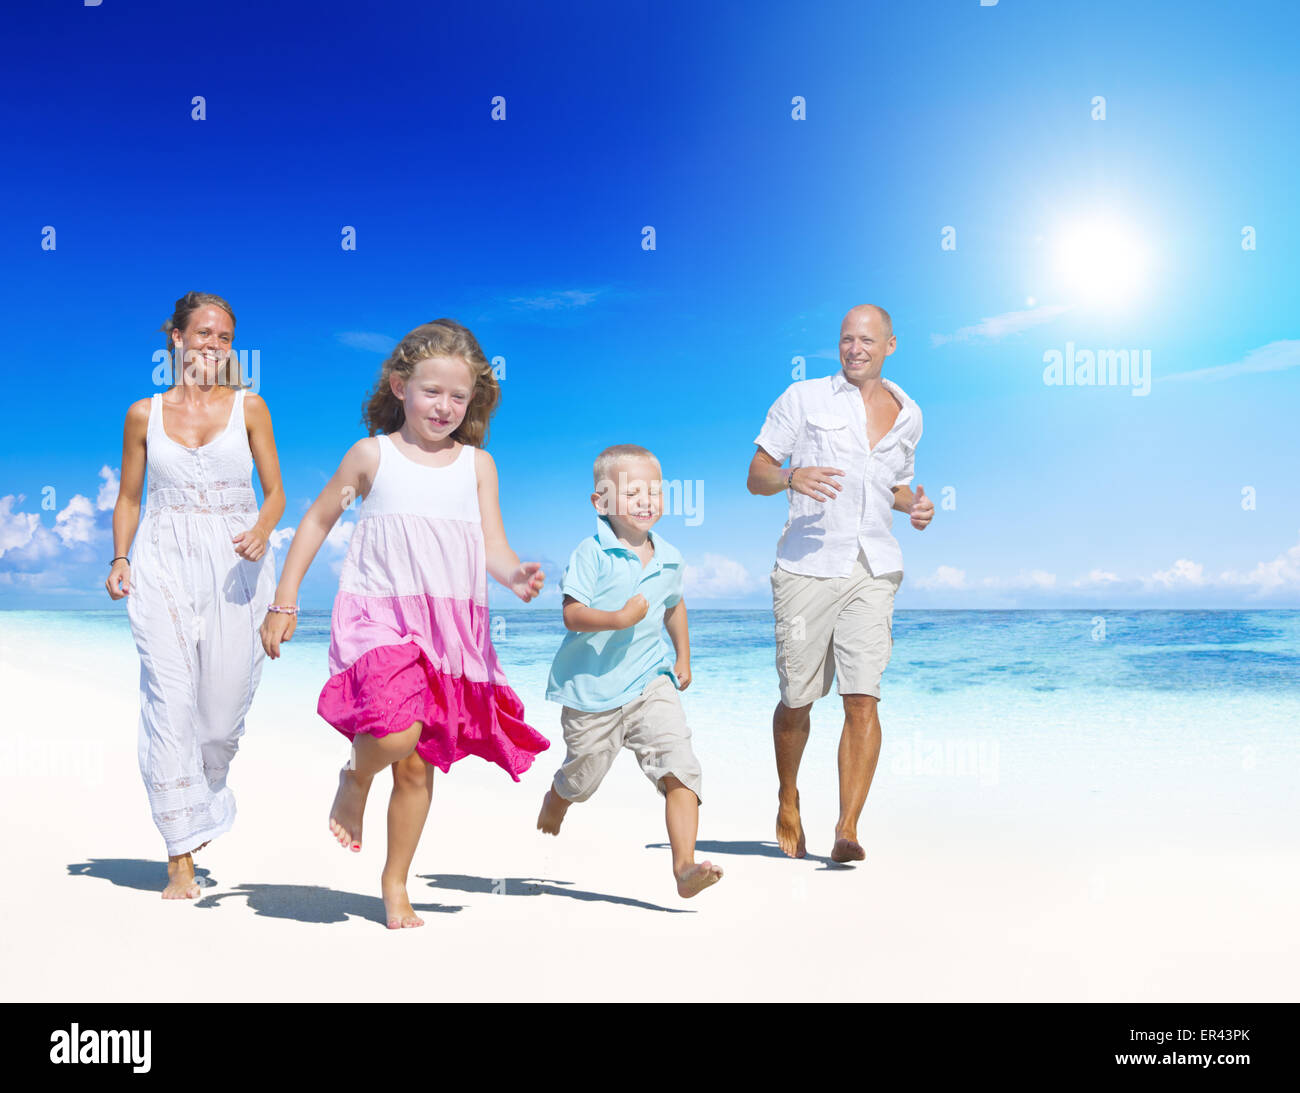 Family having fun on a beach.  Young family enjoying their summer vacation. - Stock Image